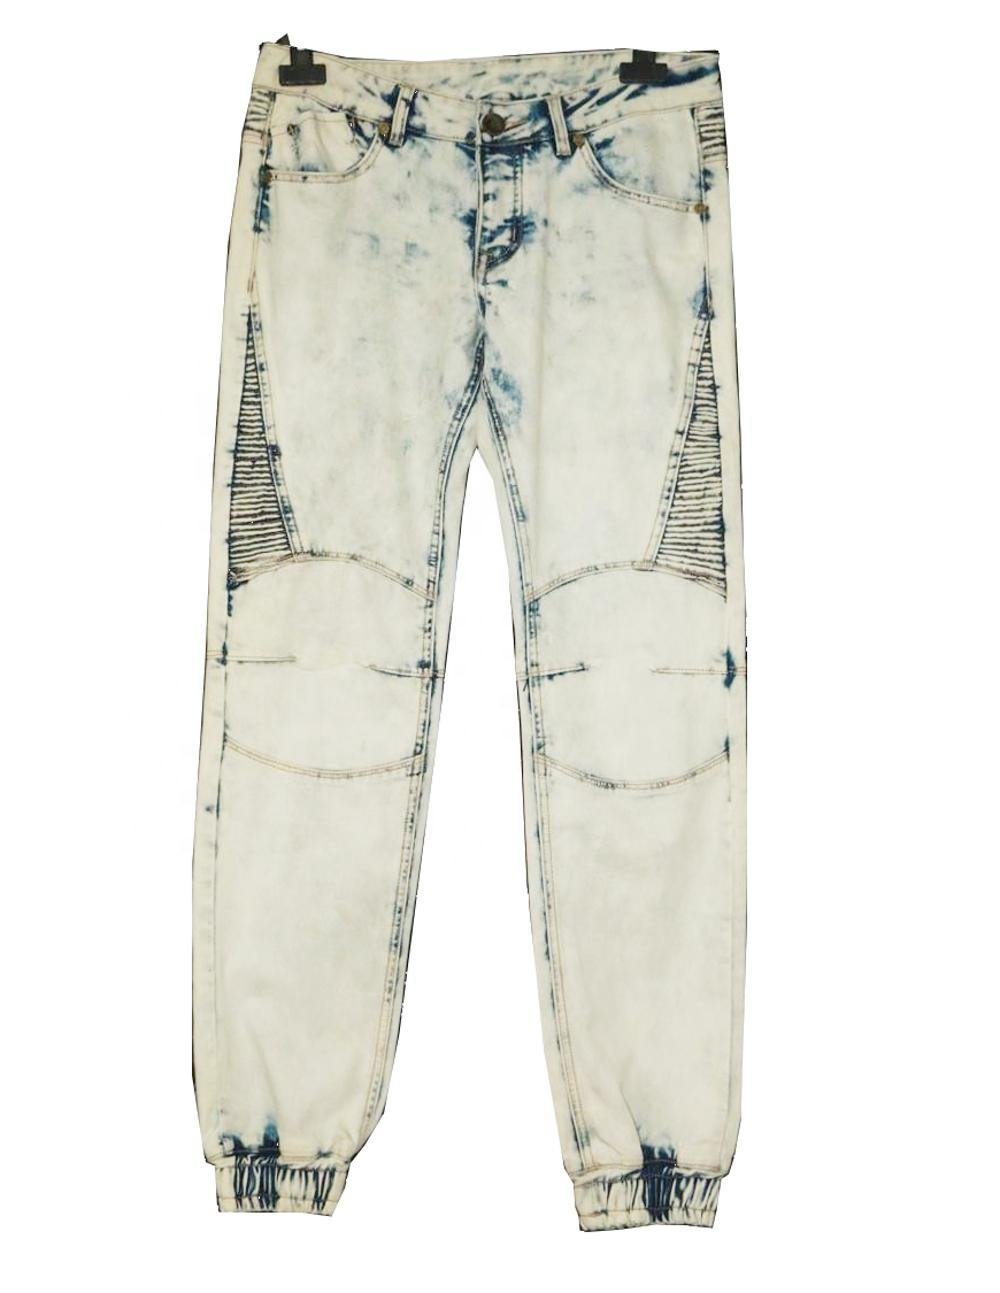 Royal wolf denim jeans manufacturer all over wash fry bleached biker style jogger pants